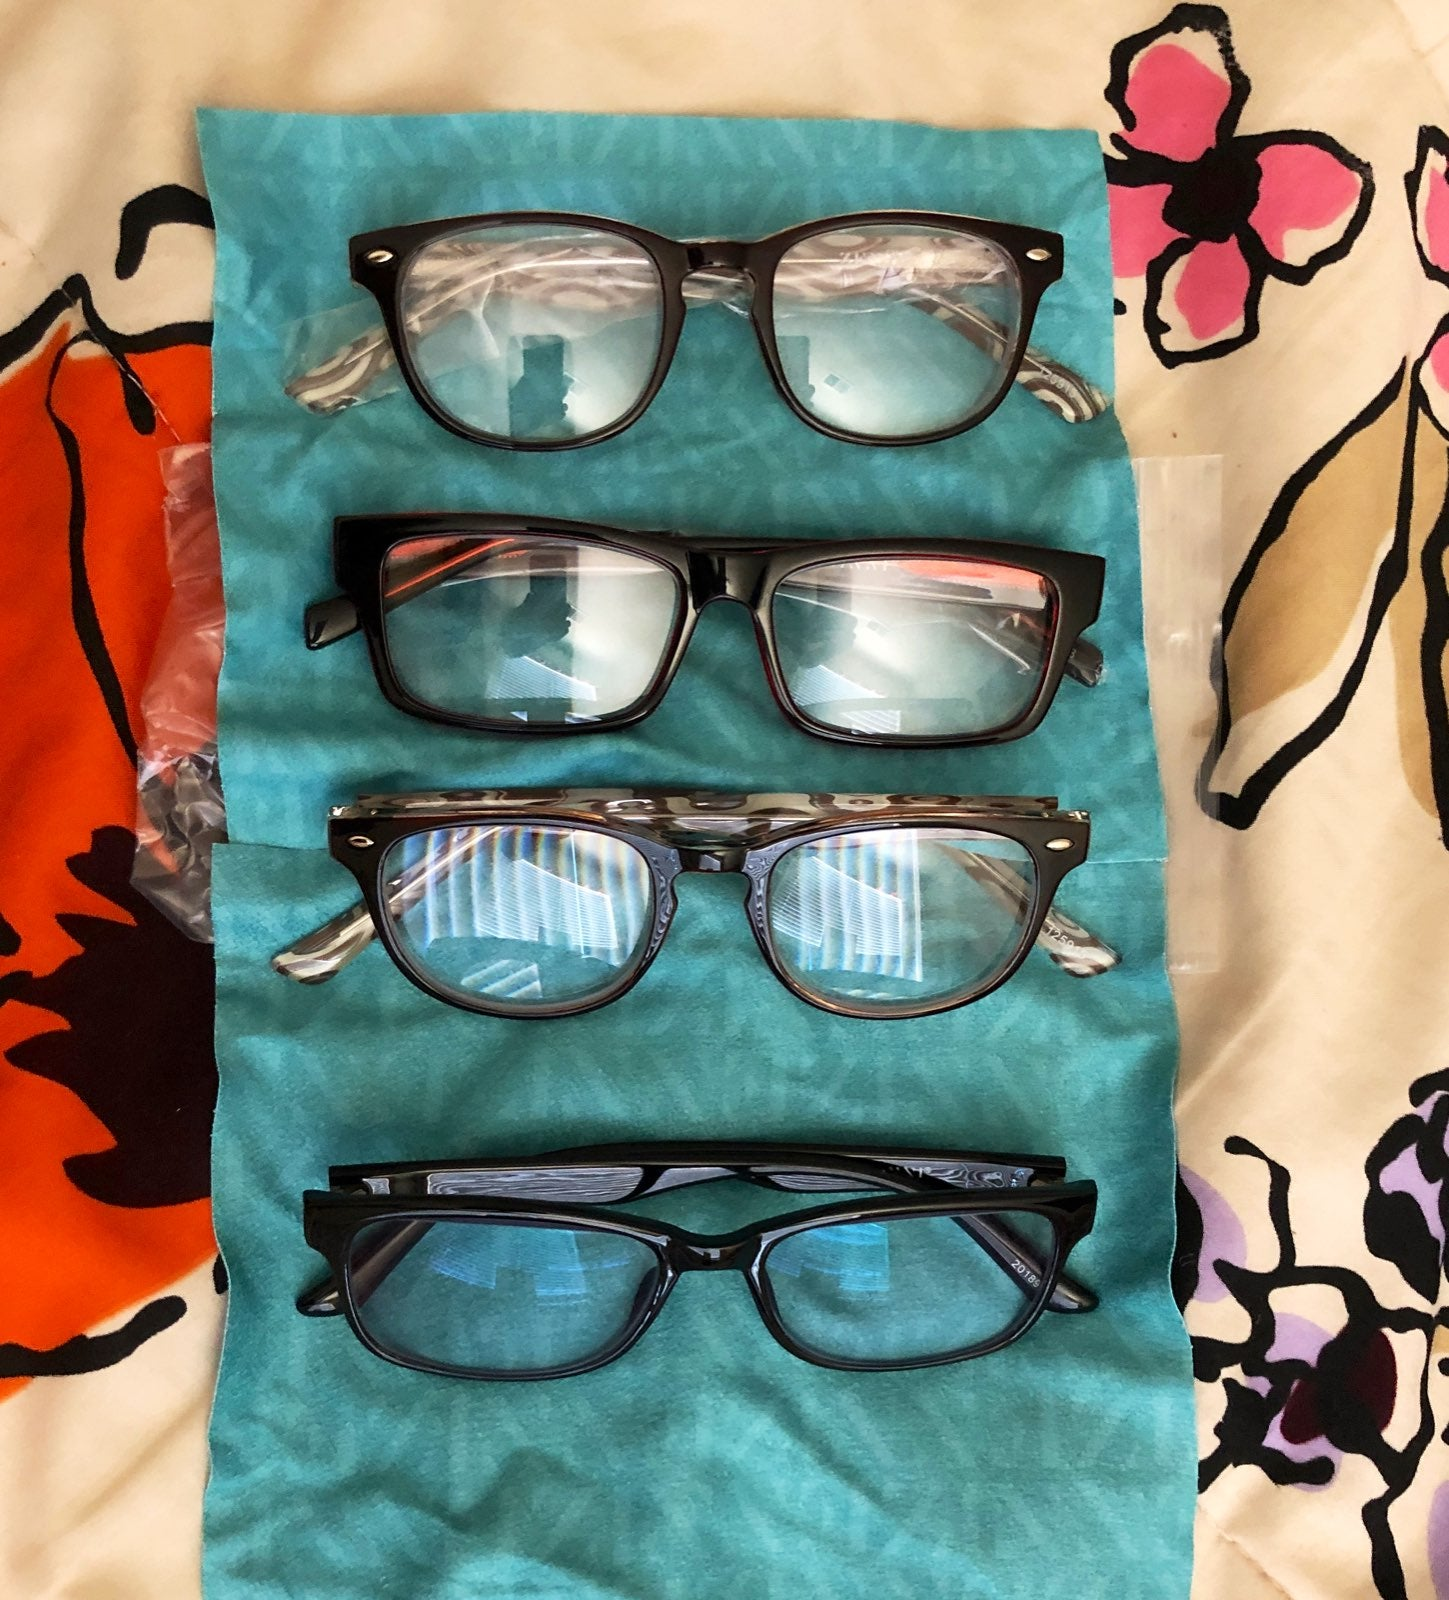 FOUR BRAND NEW PAIRS OF READING GLASSES